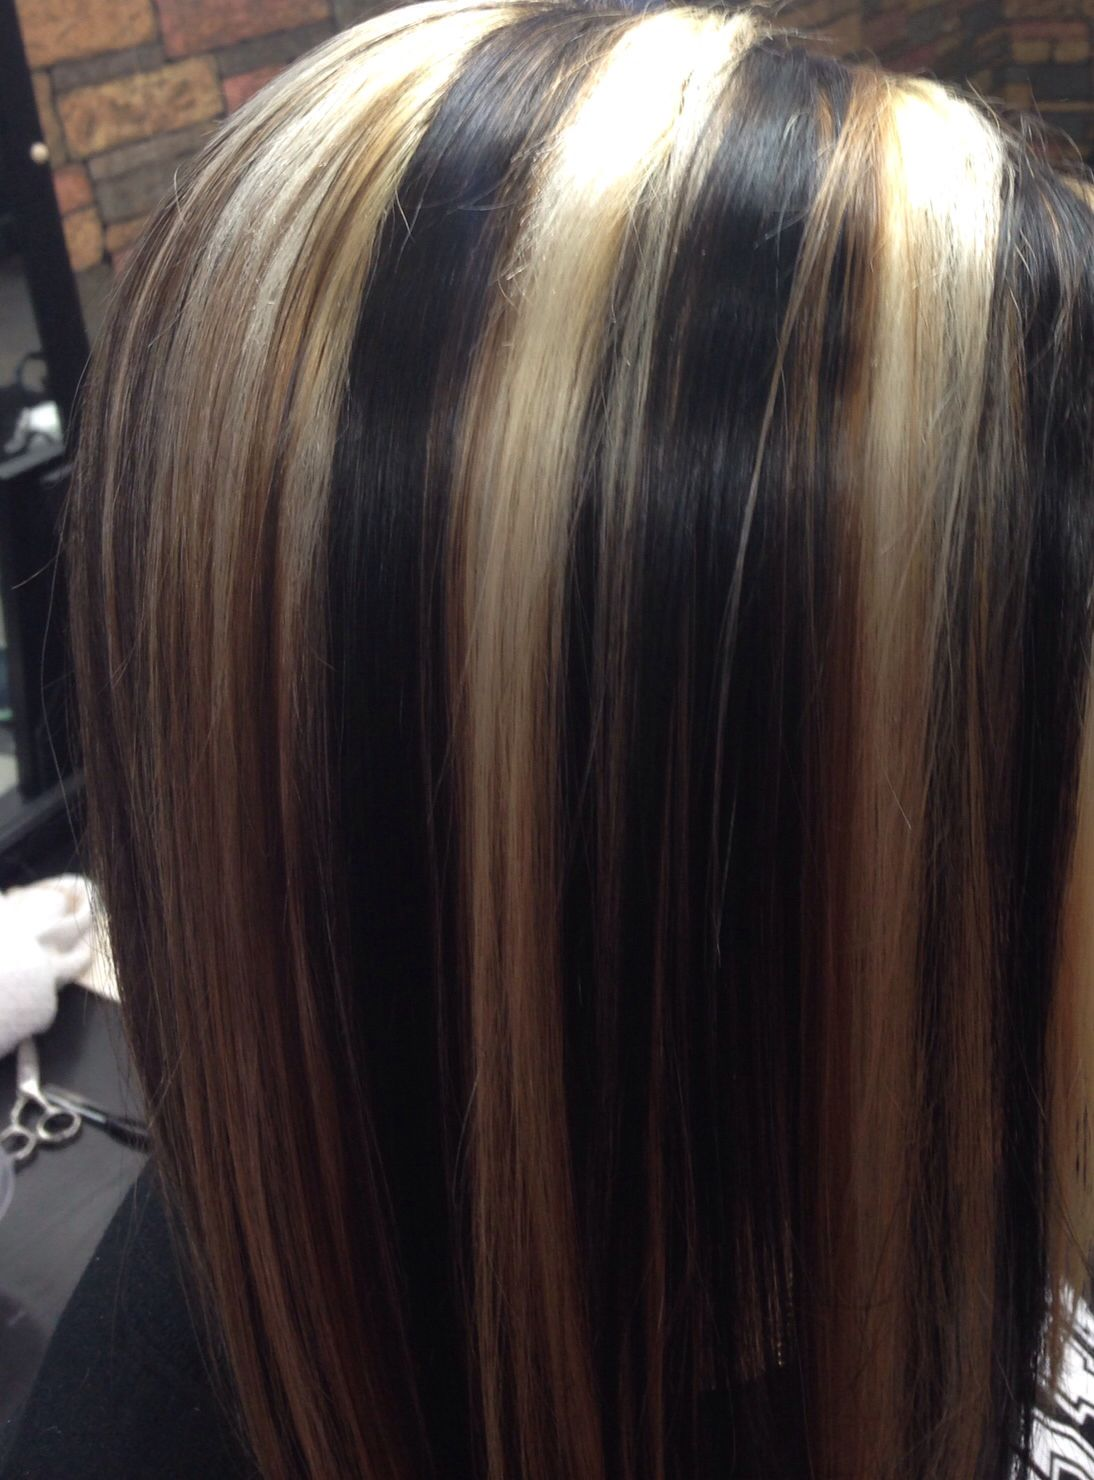 Thick blonde streaks